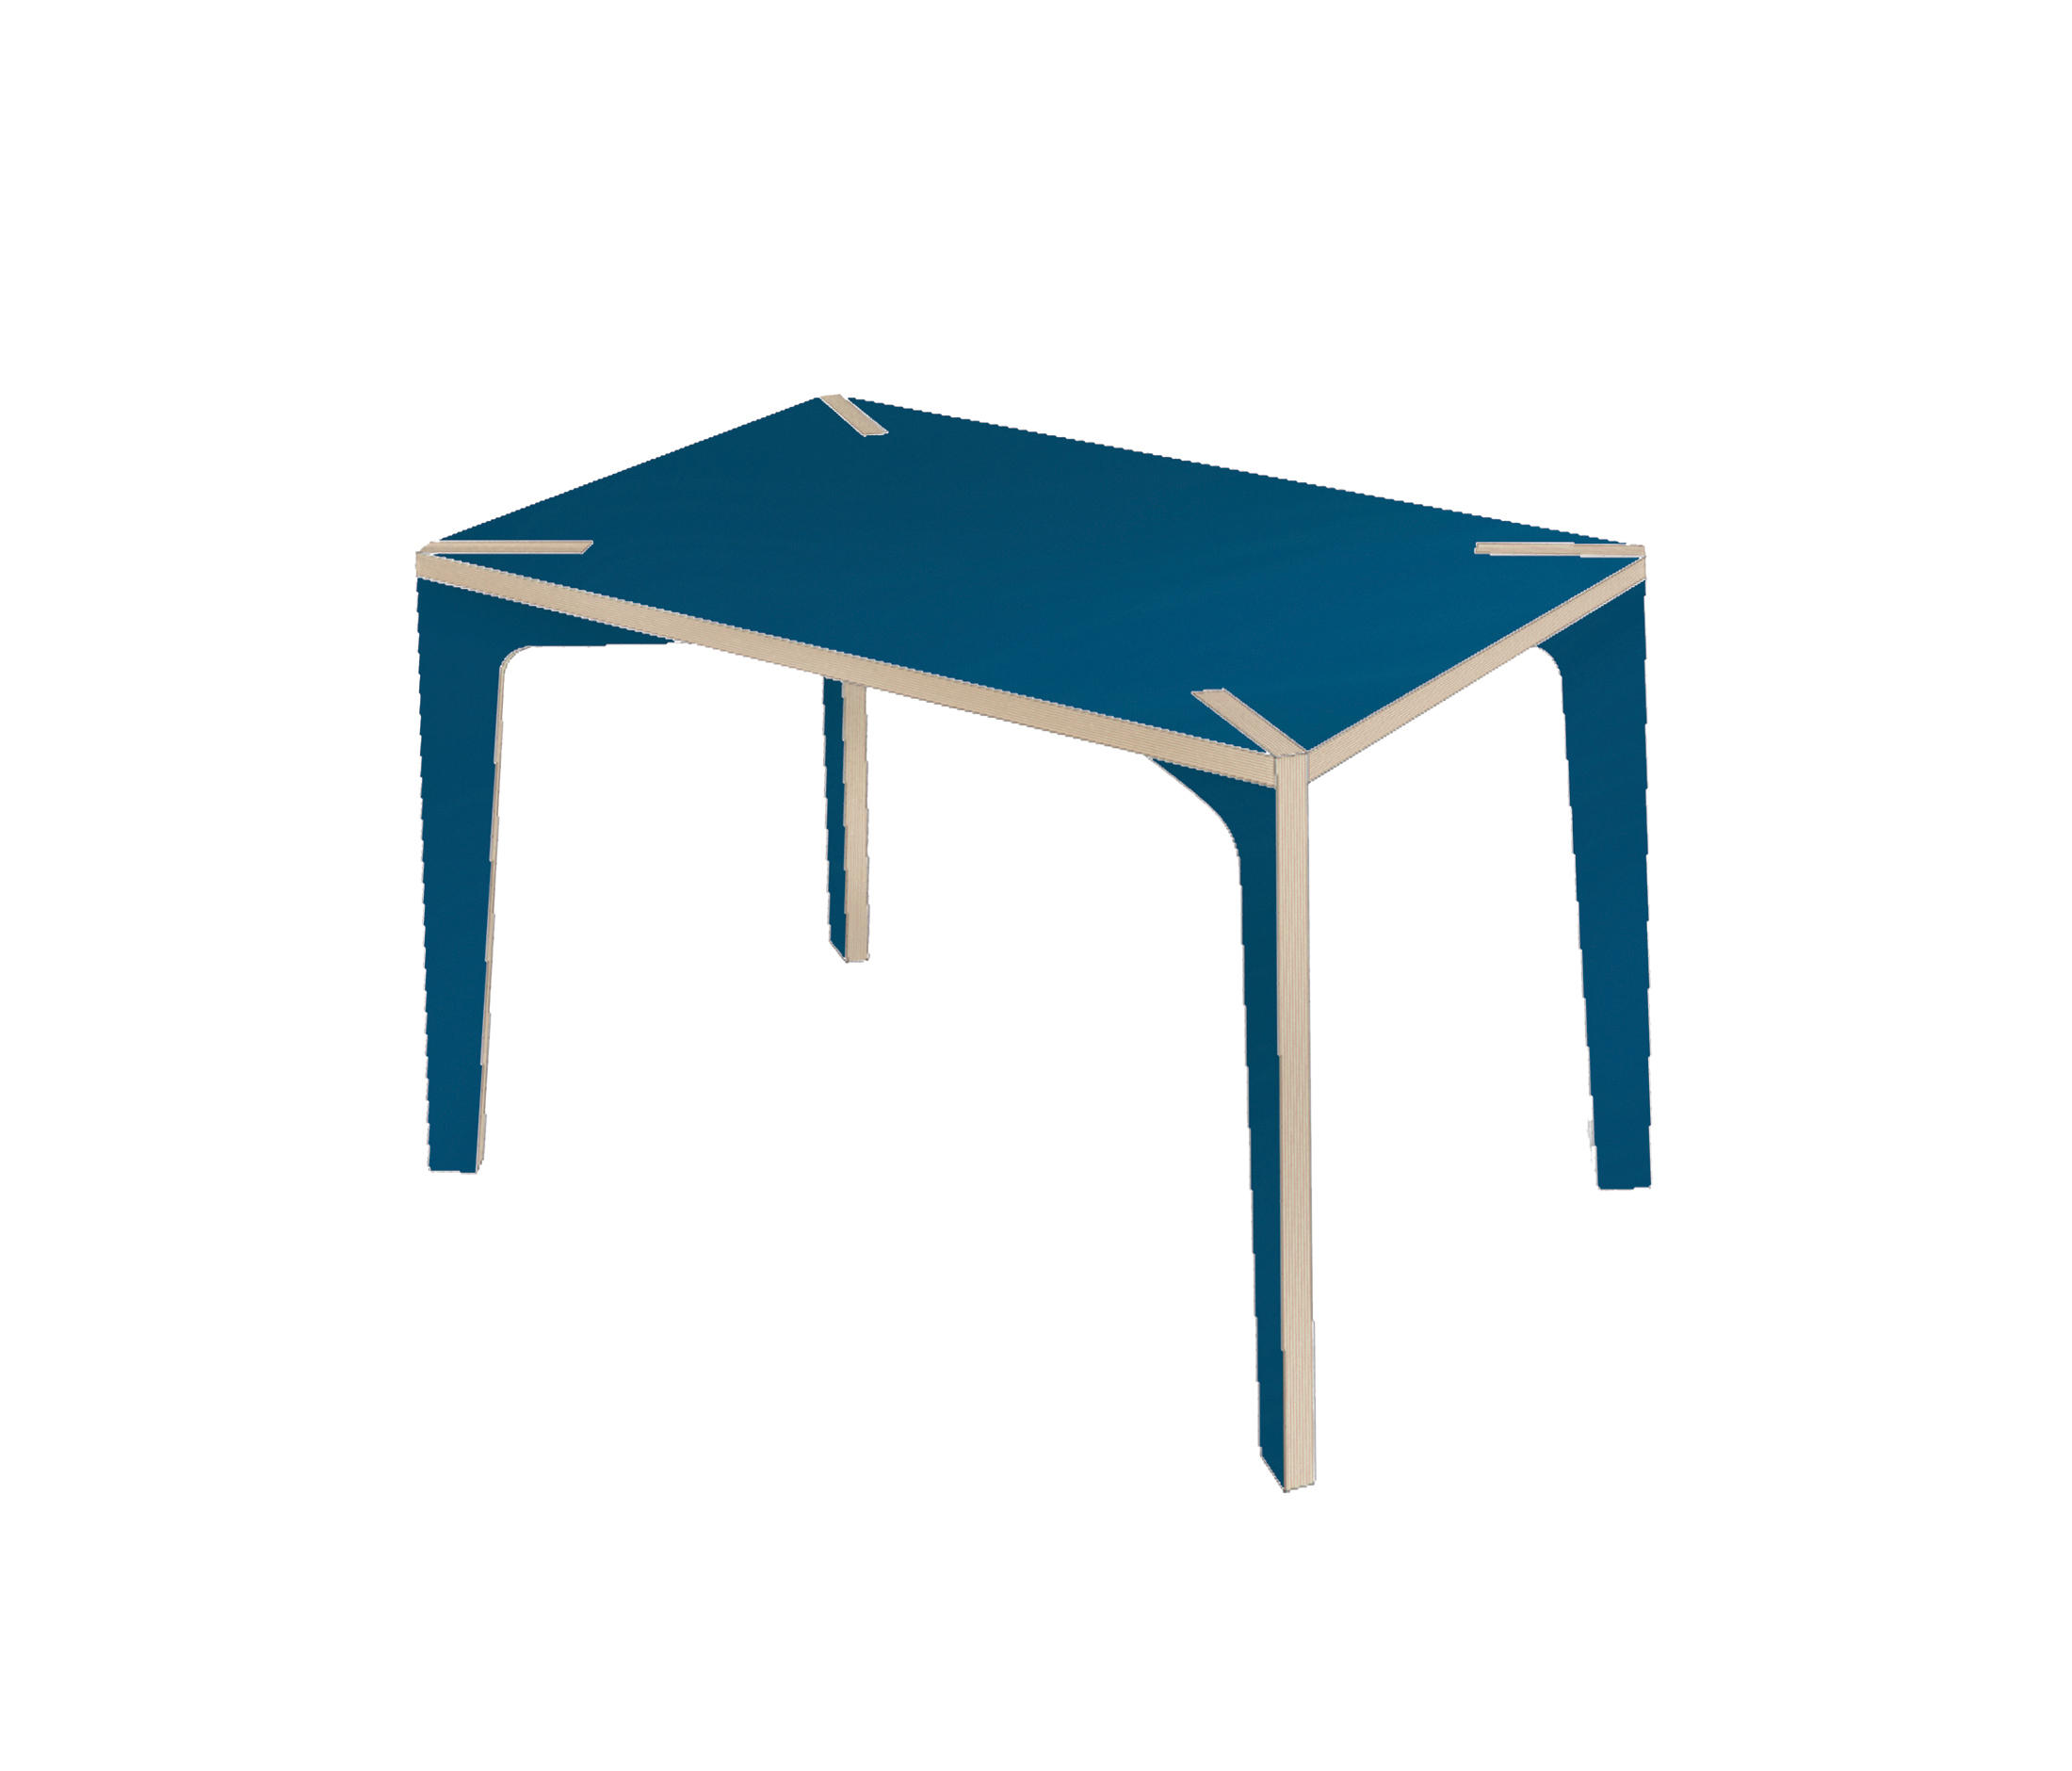 s rie x desk table blue u076 cafeteria tables from la corbeille architonic. Black Bedroom Furniture Sets. Home Design Ideas